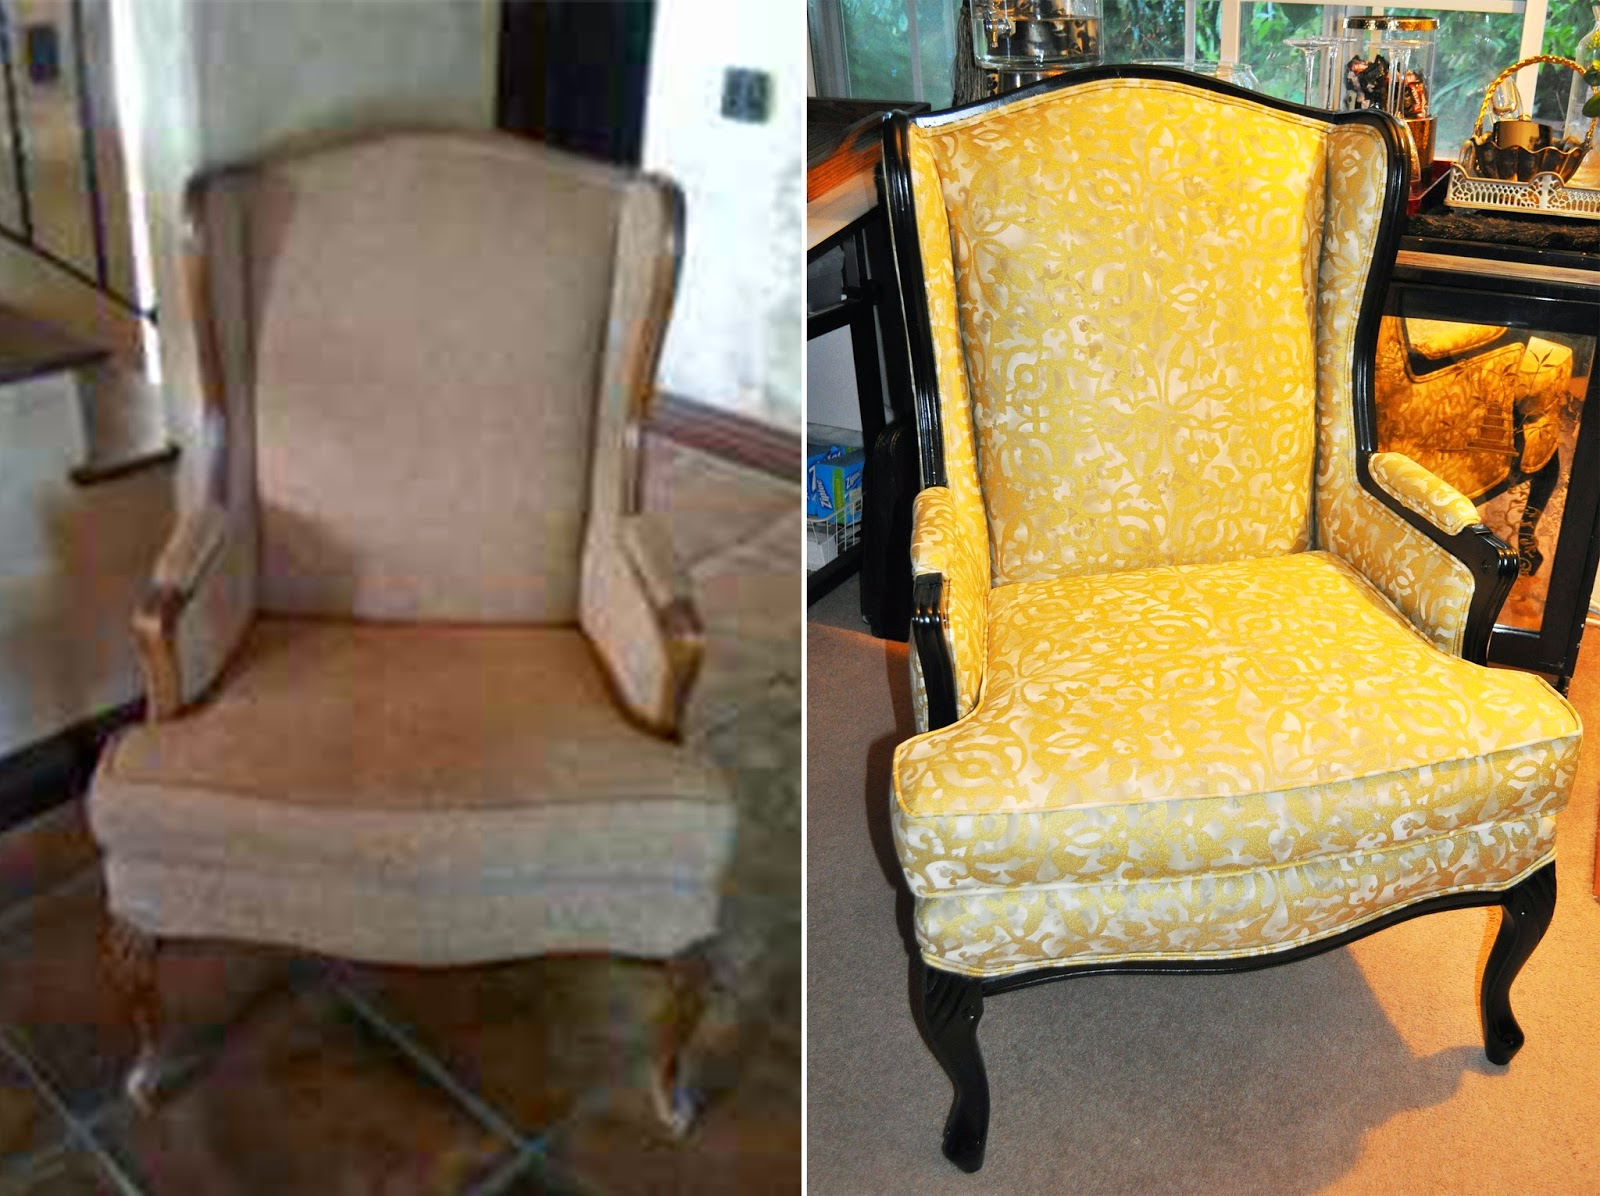 Vintage finds on craigslist autos post for Furniture upcycling